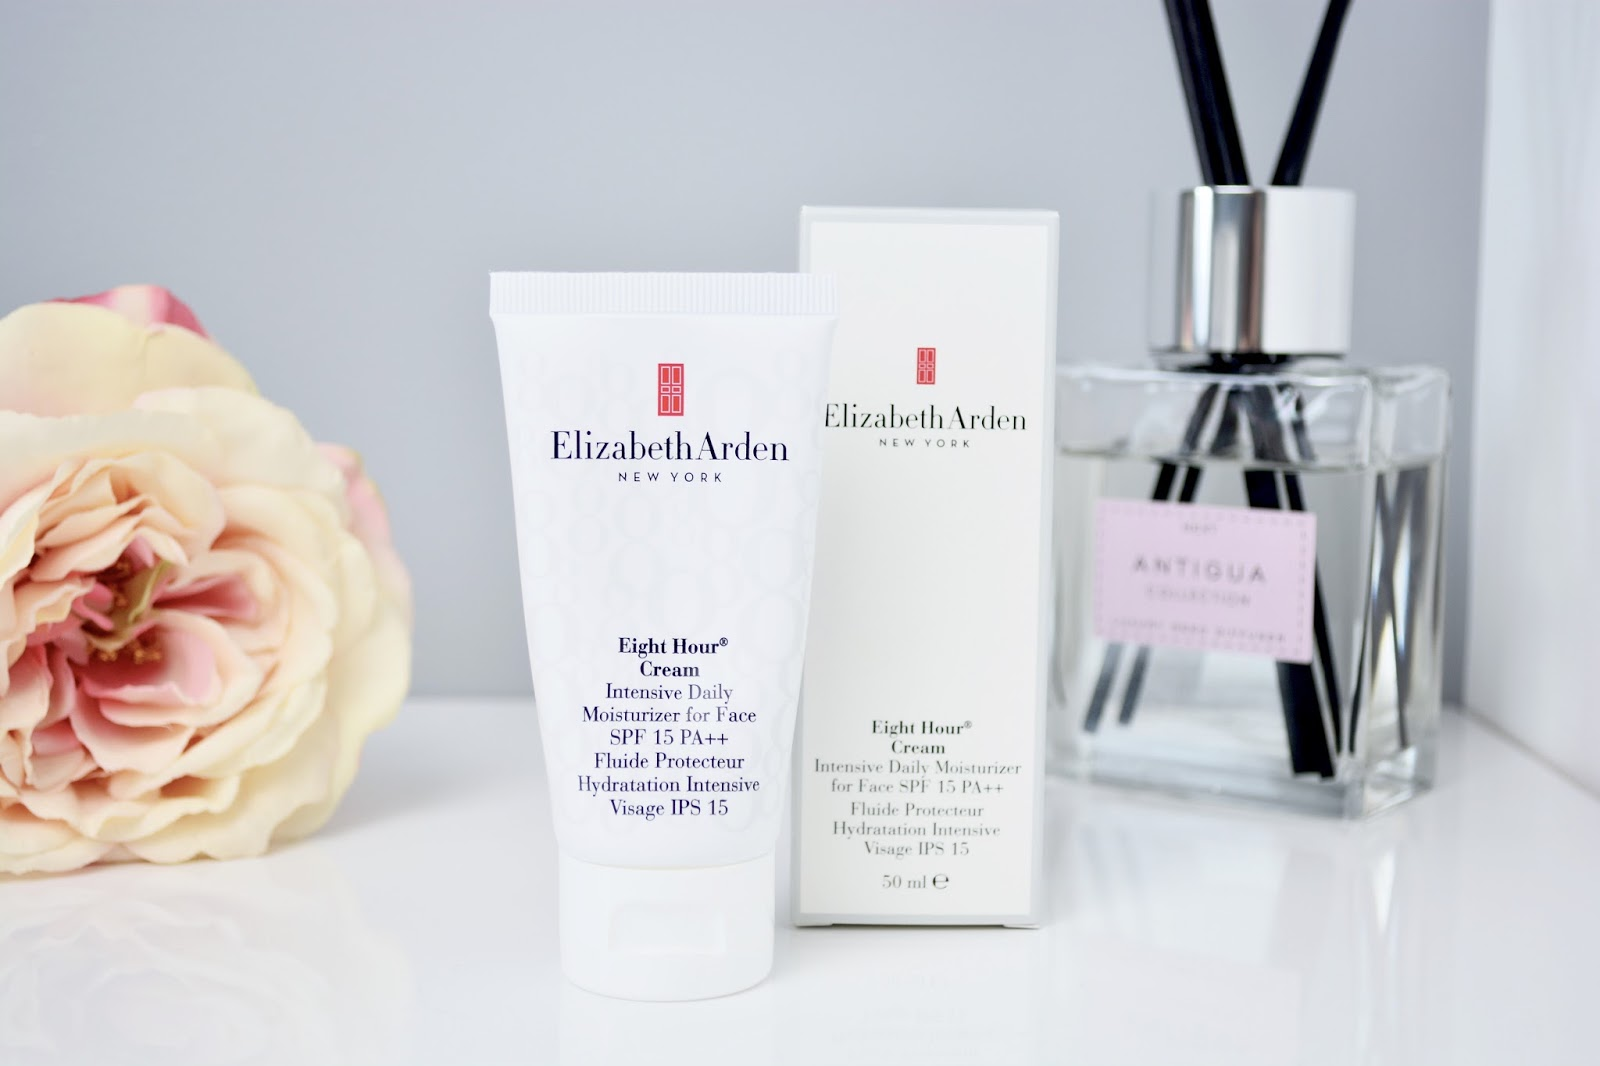 Elizabeth Arden Eight Hour Cream, Elizabeth Arden, Beauty, Moisturiser, Eight Hour Cream